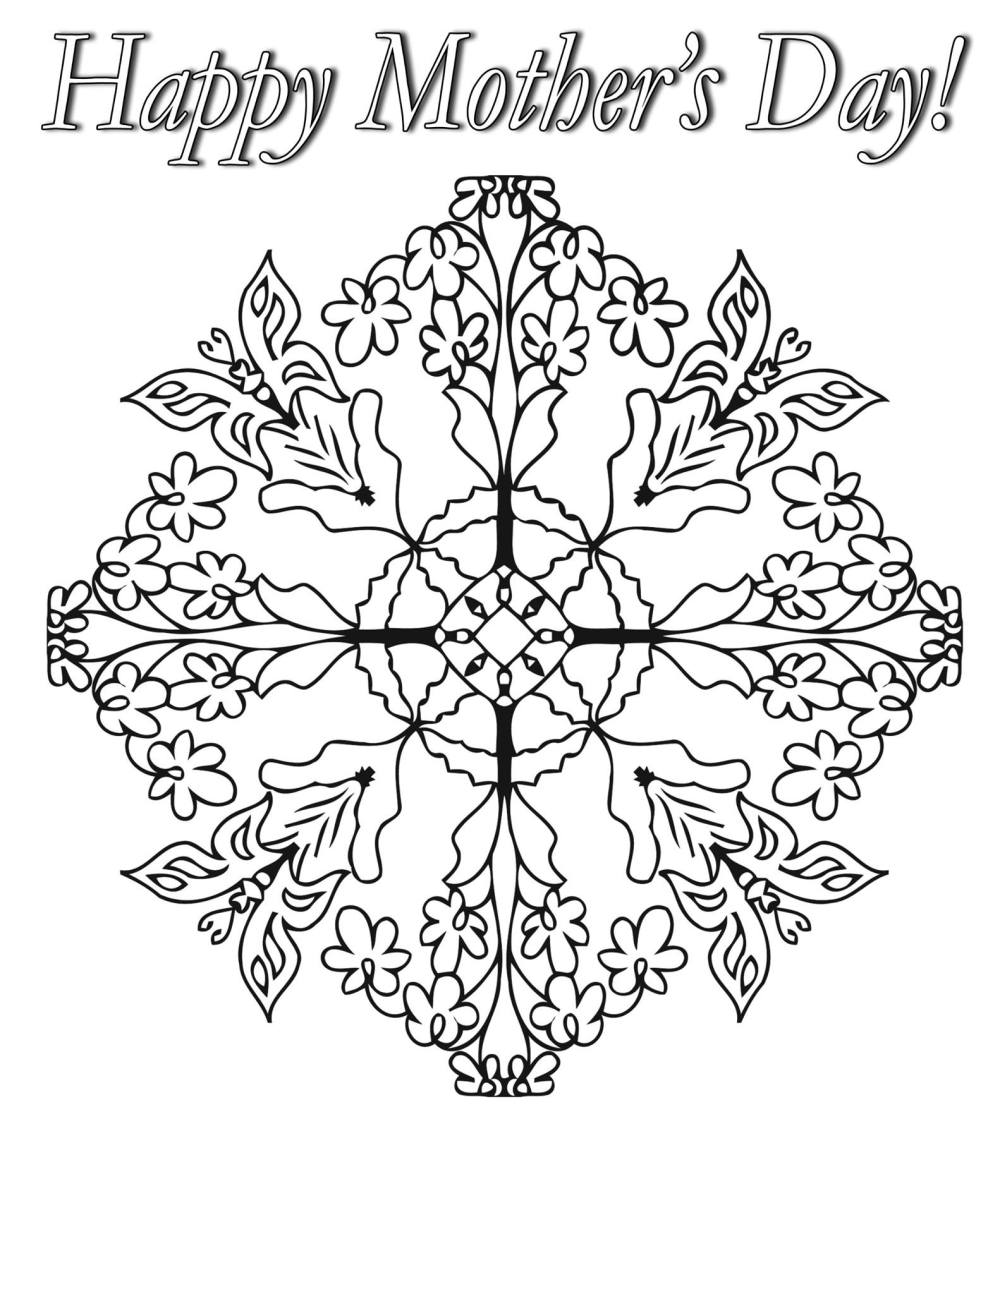 mothers day coloring pages for adults Free Coloring Pages For Mothers Day – Adult Coloring Worldwide mothers day coloring pages for adults